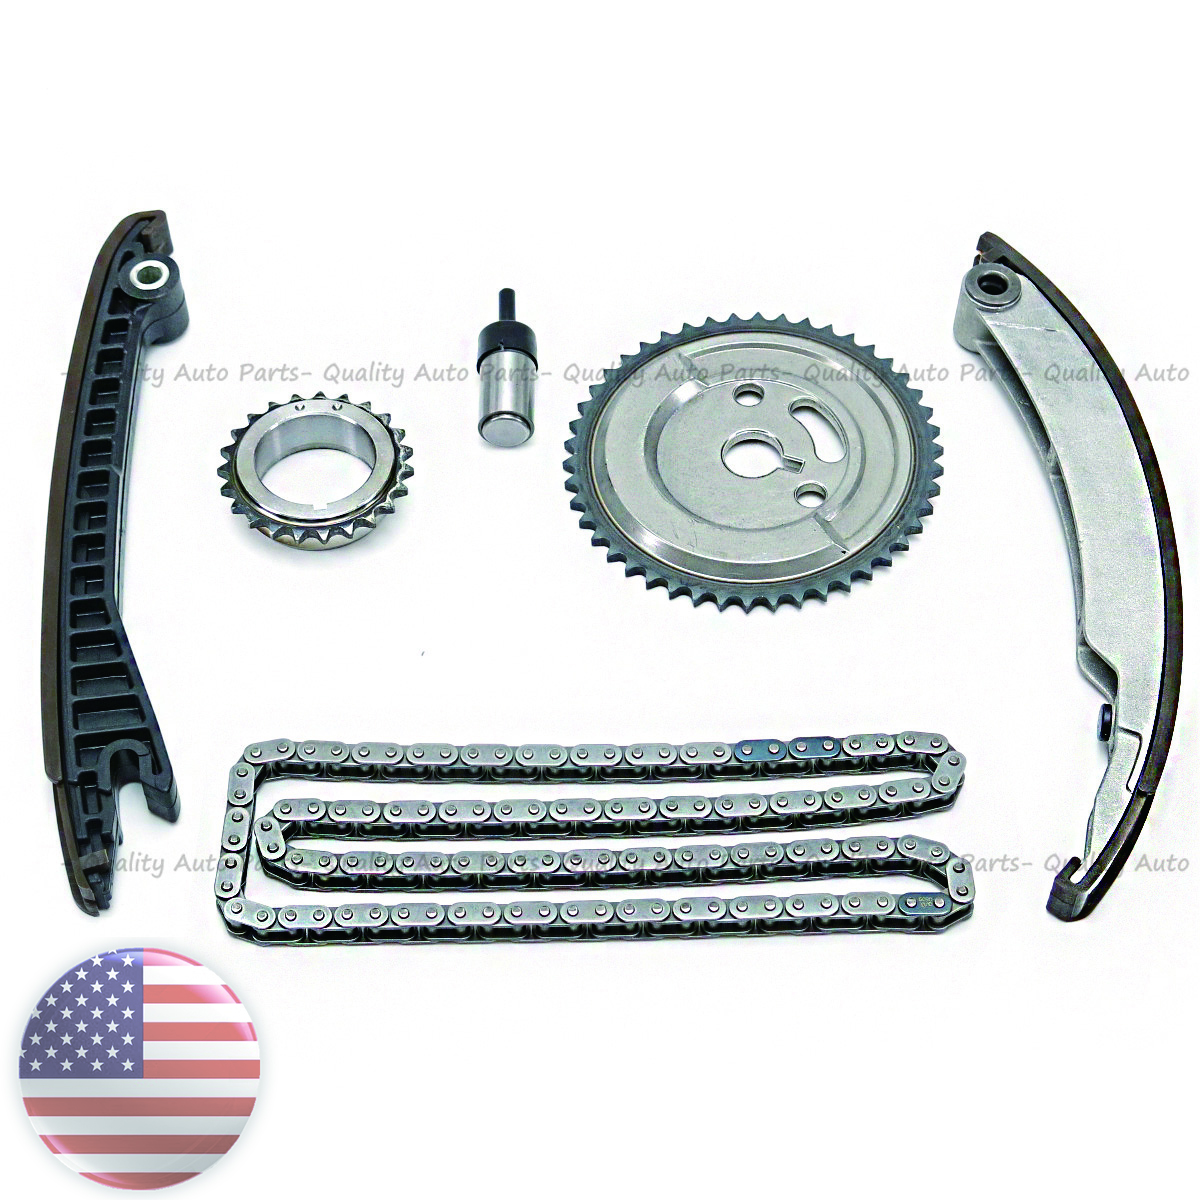 New BMW MINI Cooper R50 R52 R53 CONVERTBLE WORKS Timing Chain Kit